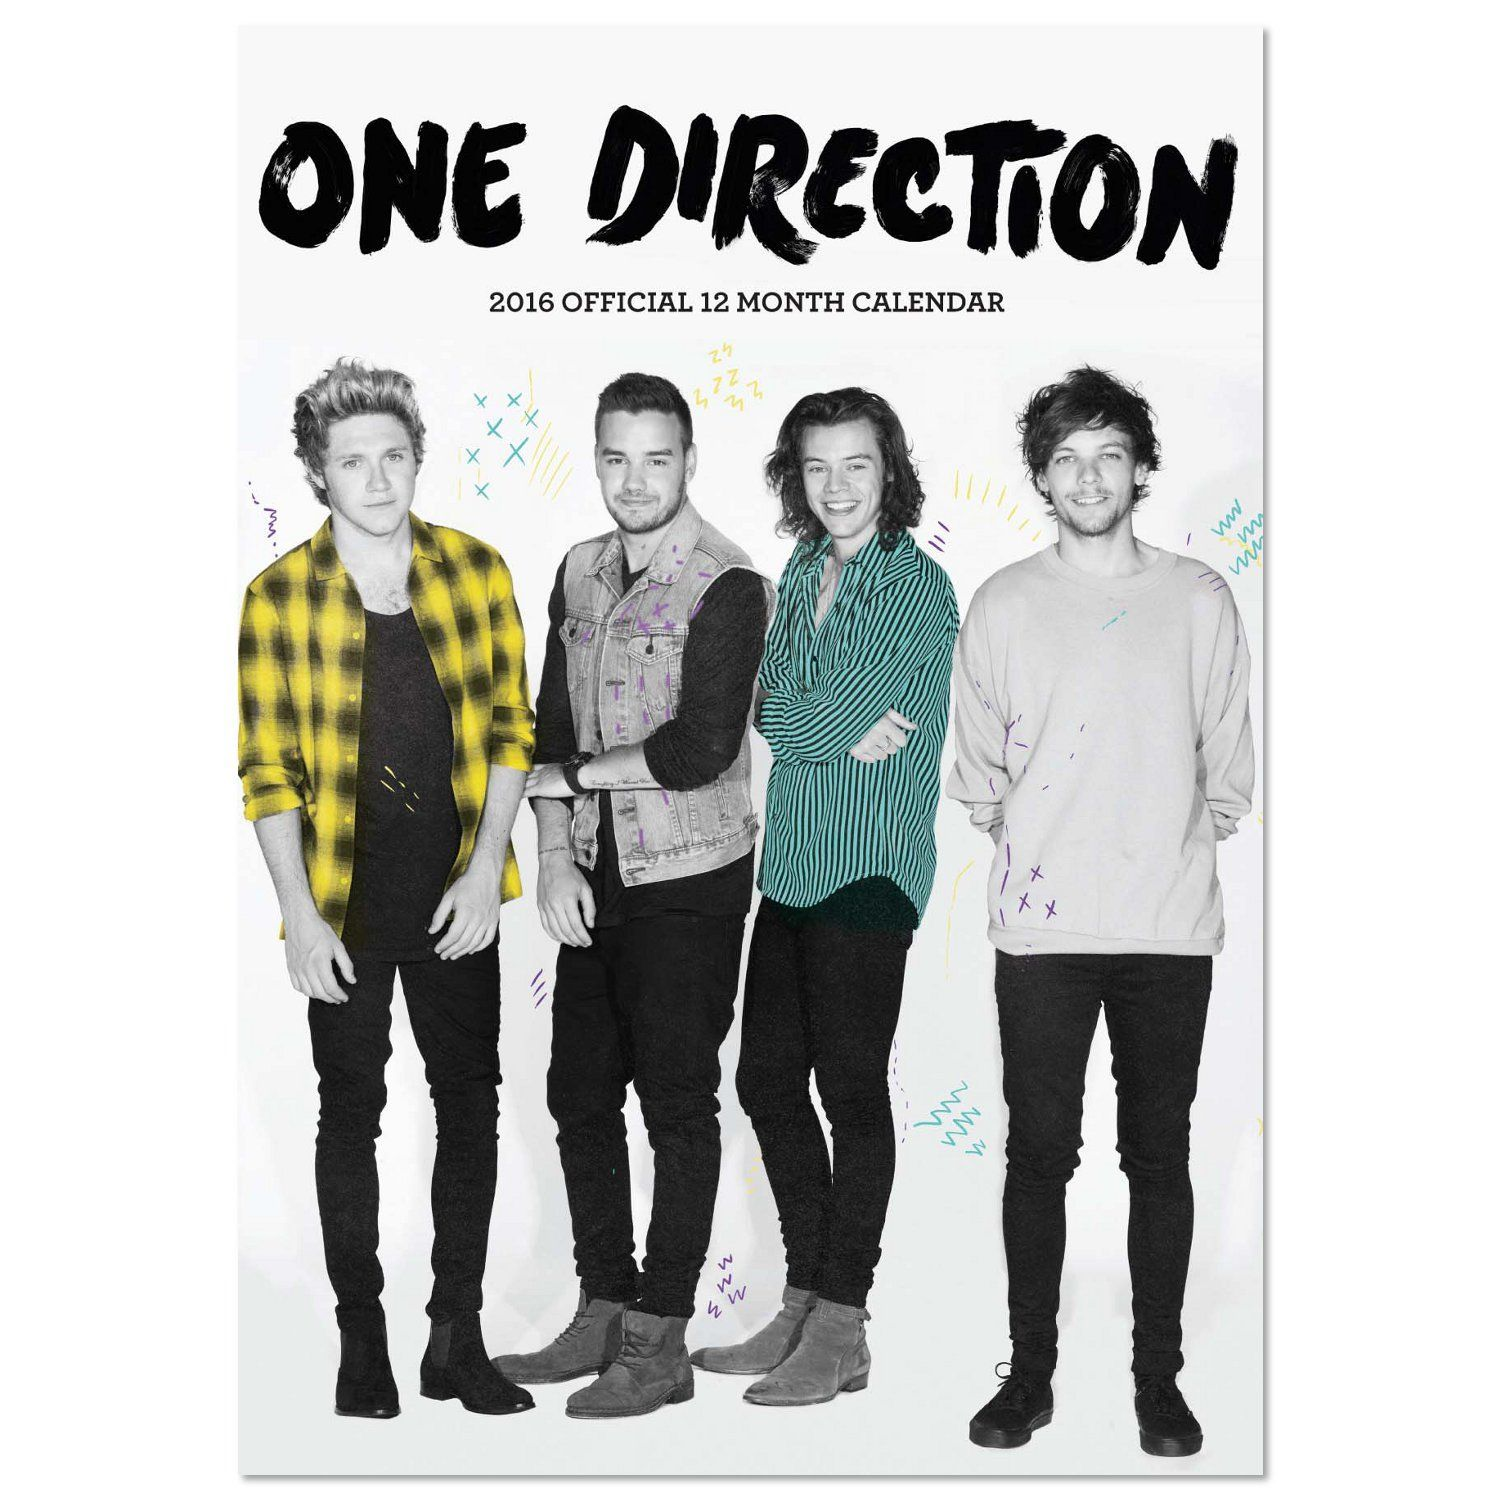 One Direction - Official One Direction 2016 Calendar